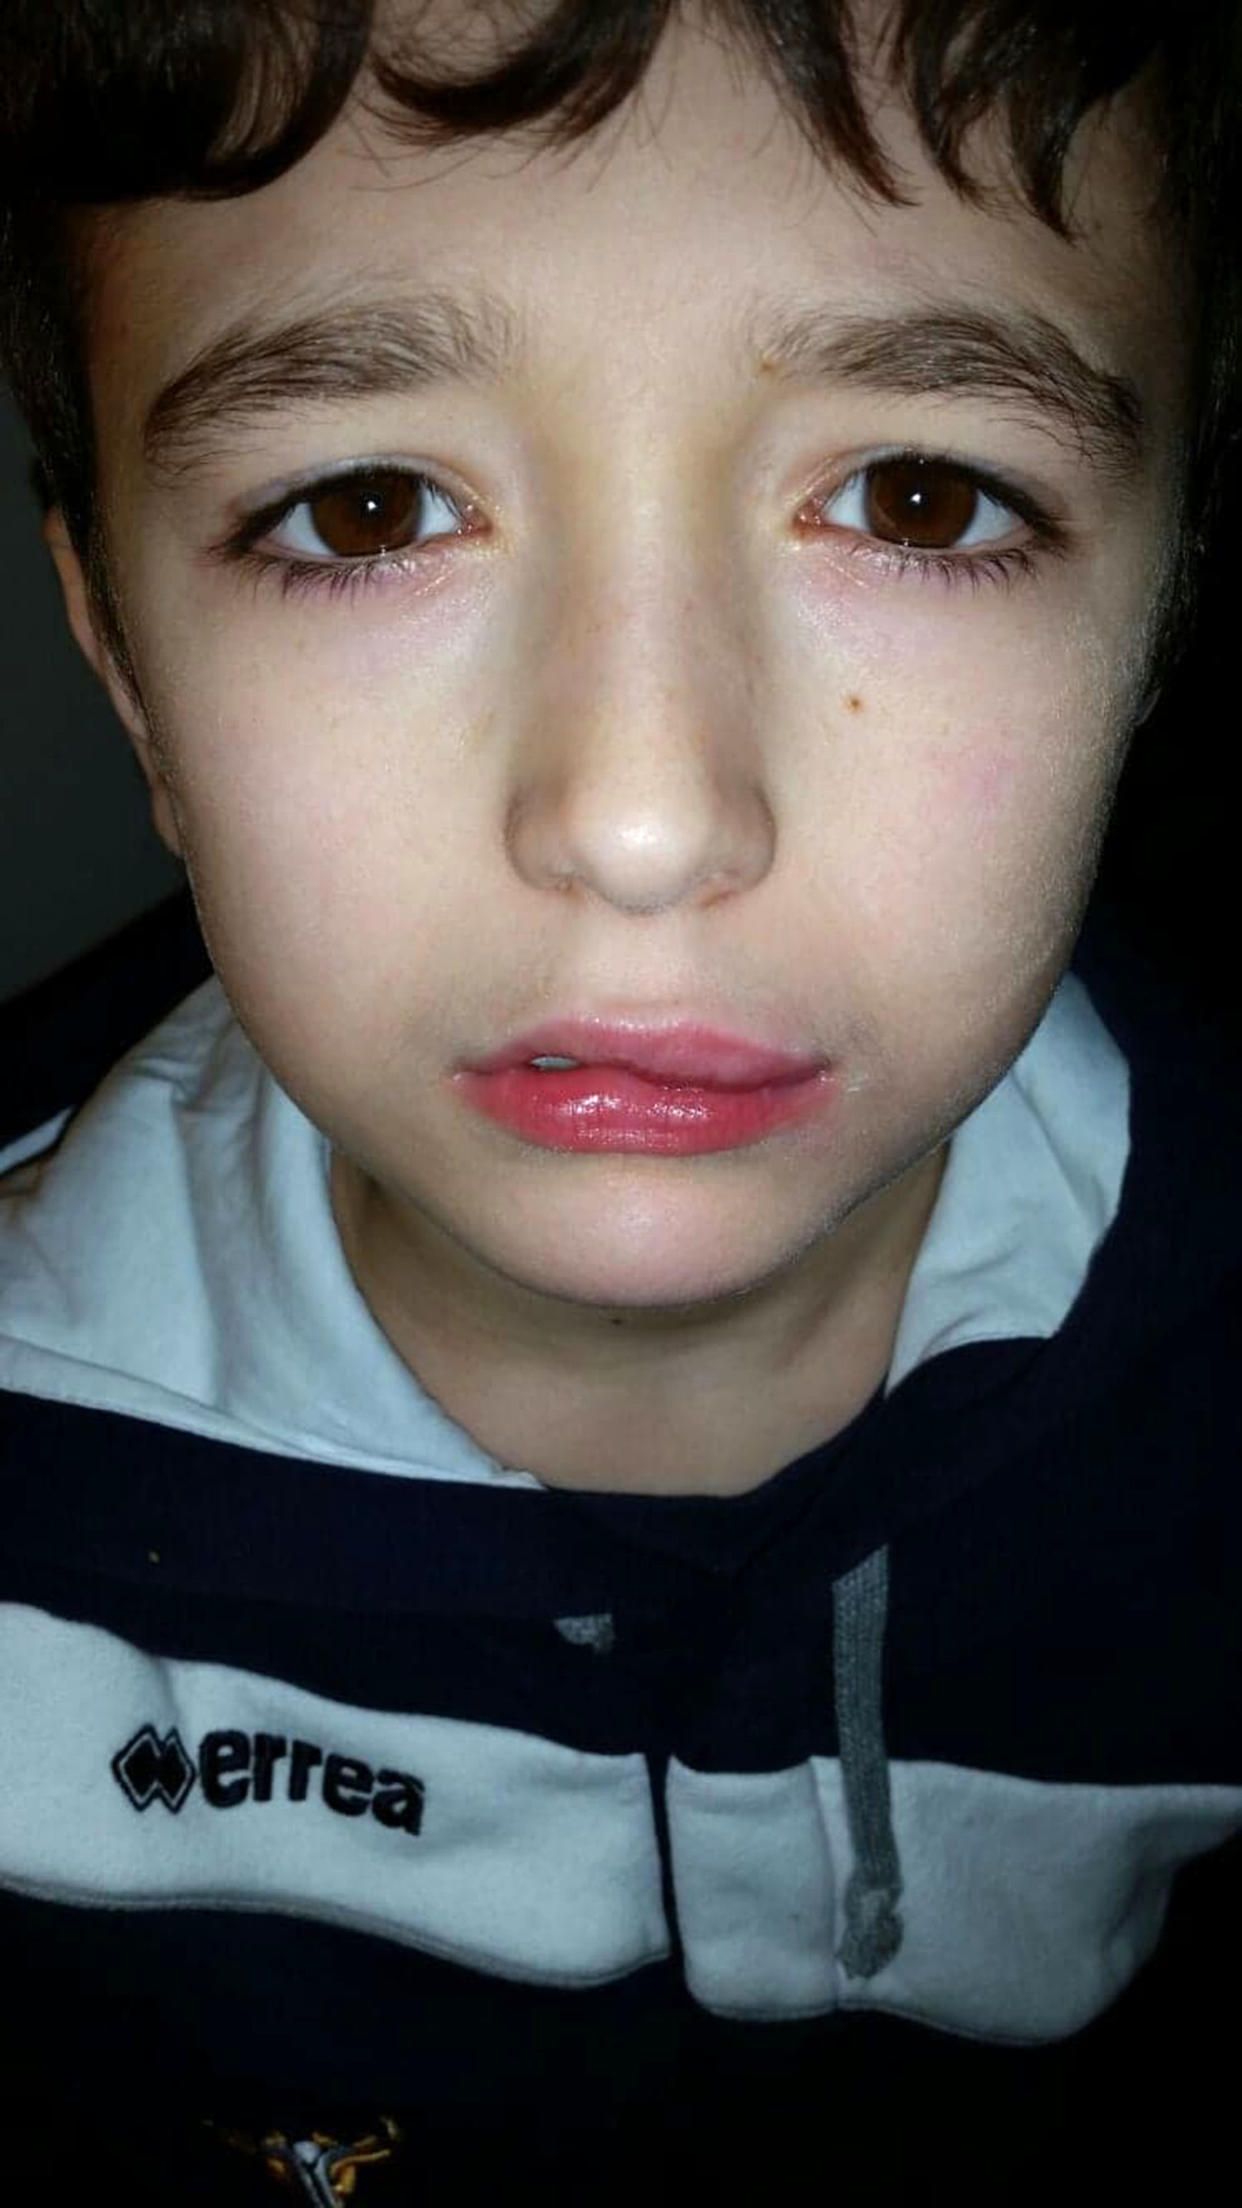 Aiden's lips swelled after an allergic reaction to Halloween sweets [Photo: Caters]